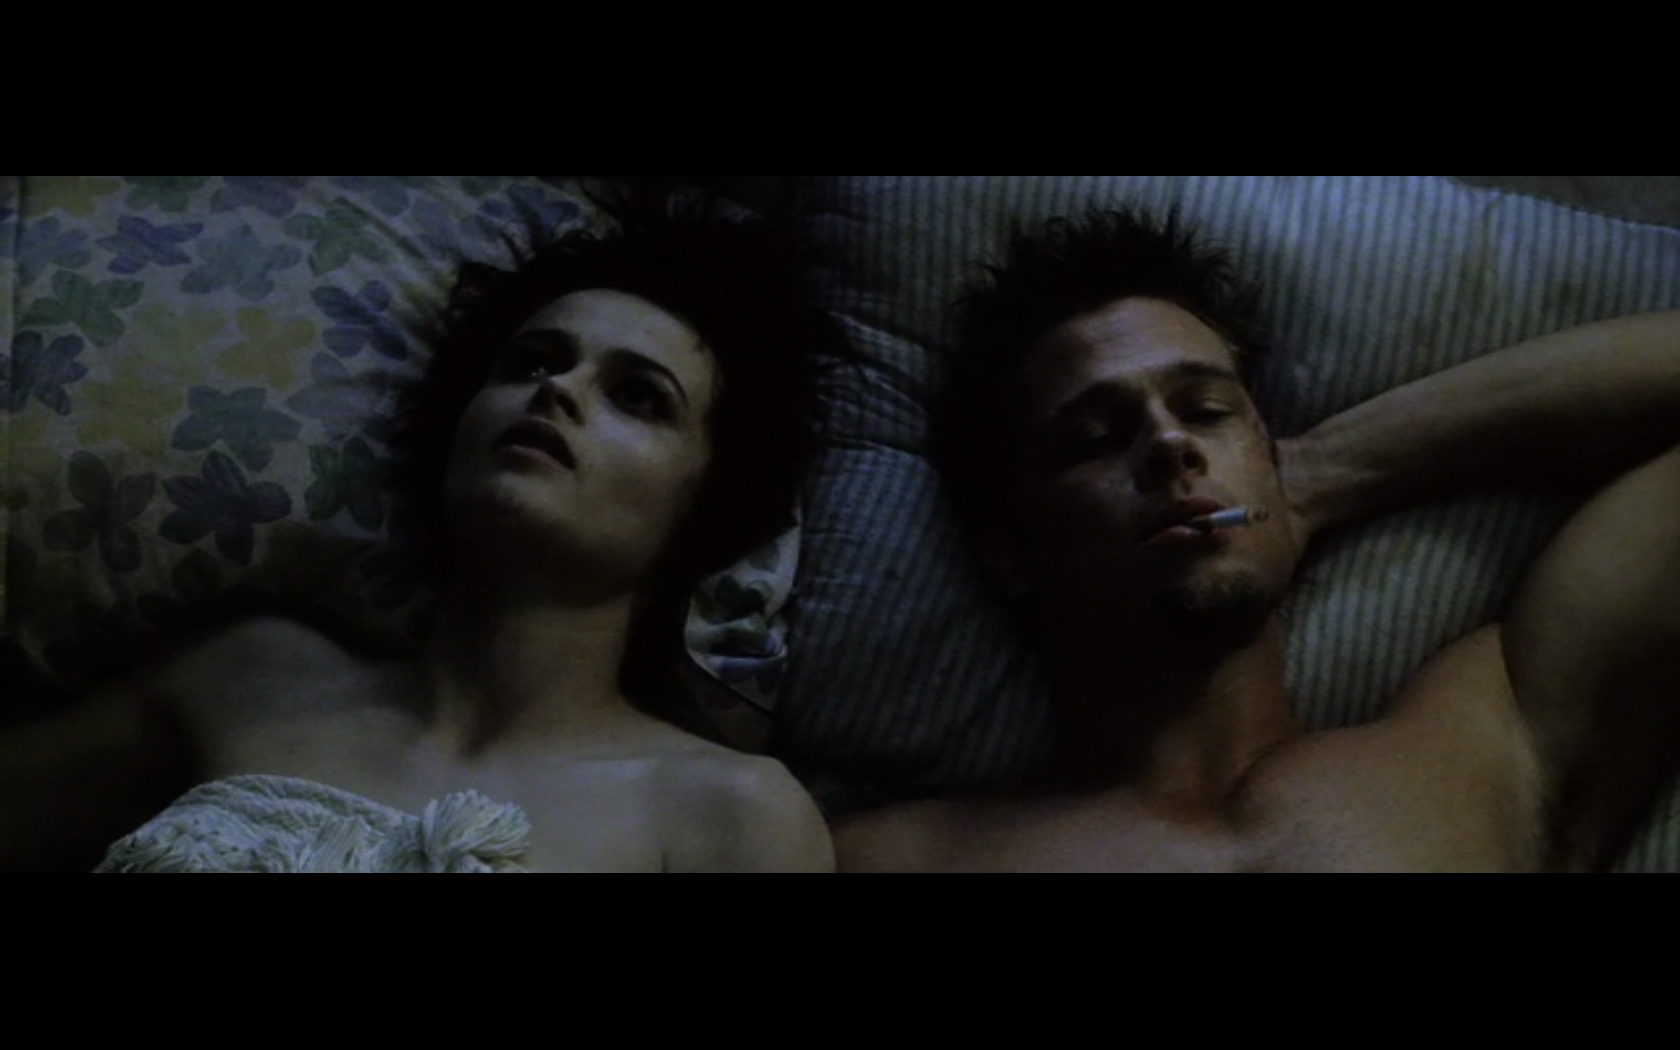 beds fight club Brad HD Wallpaper